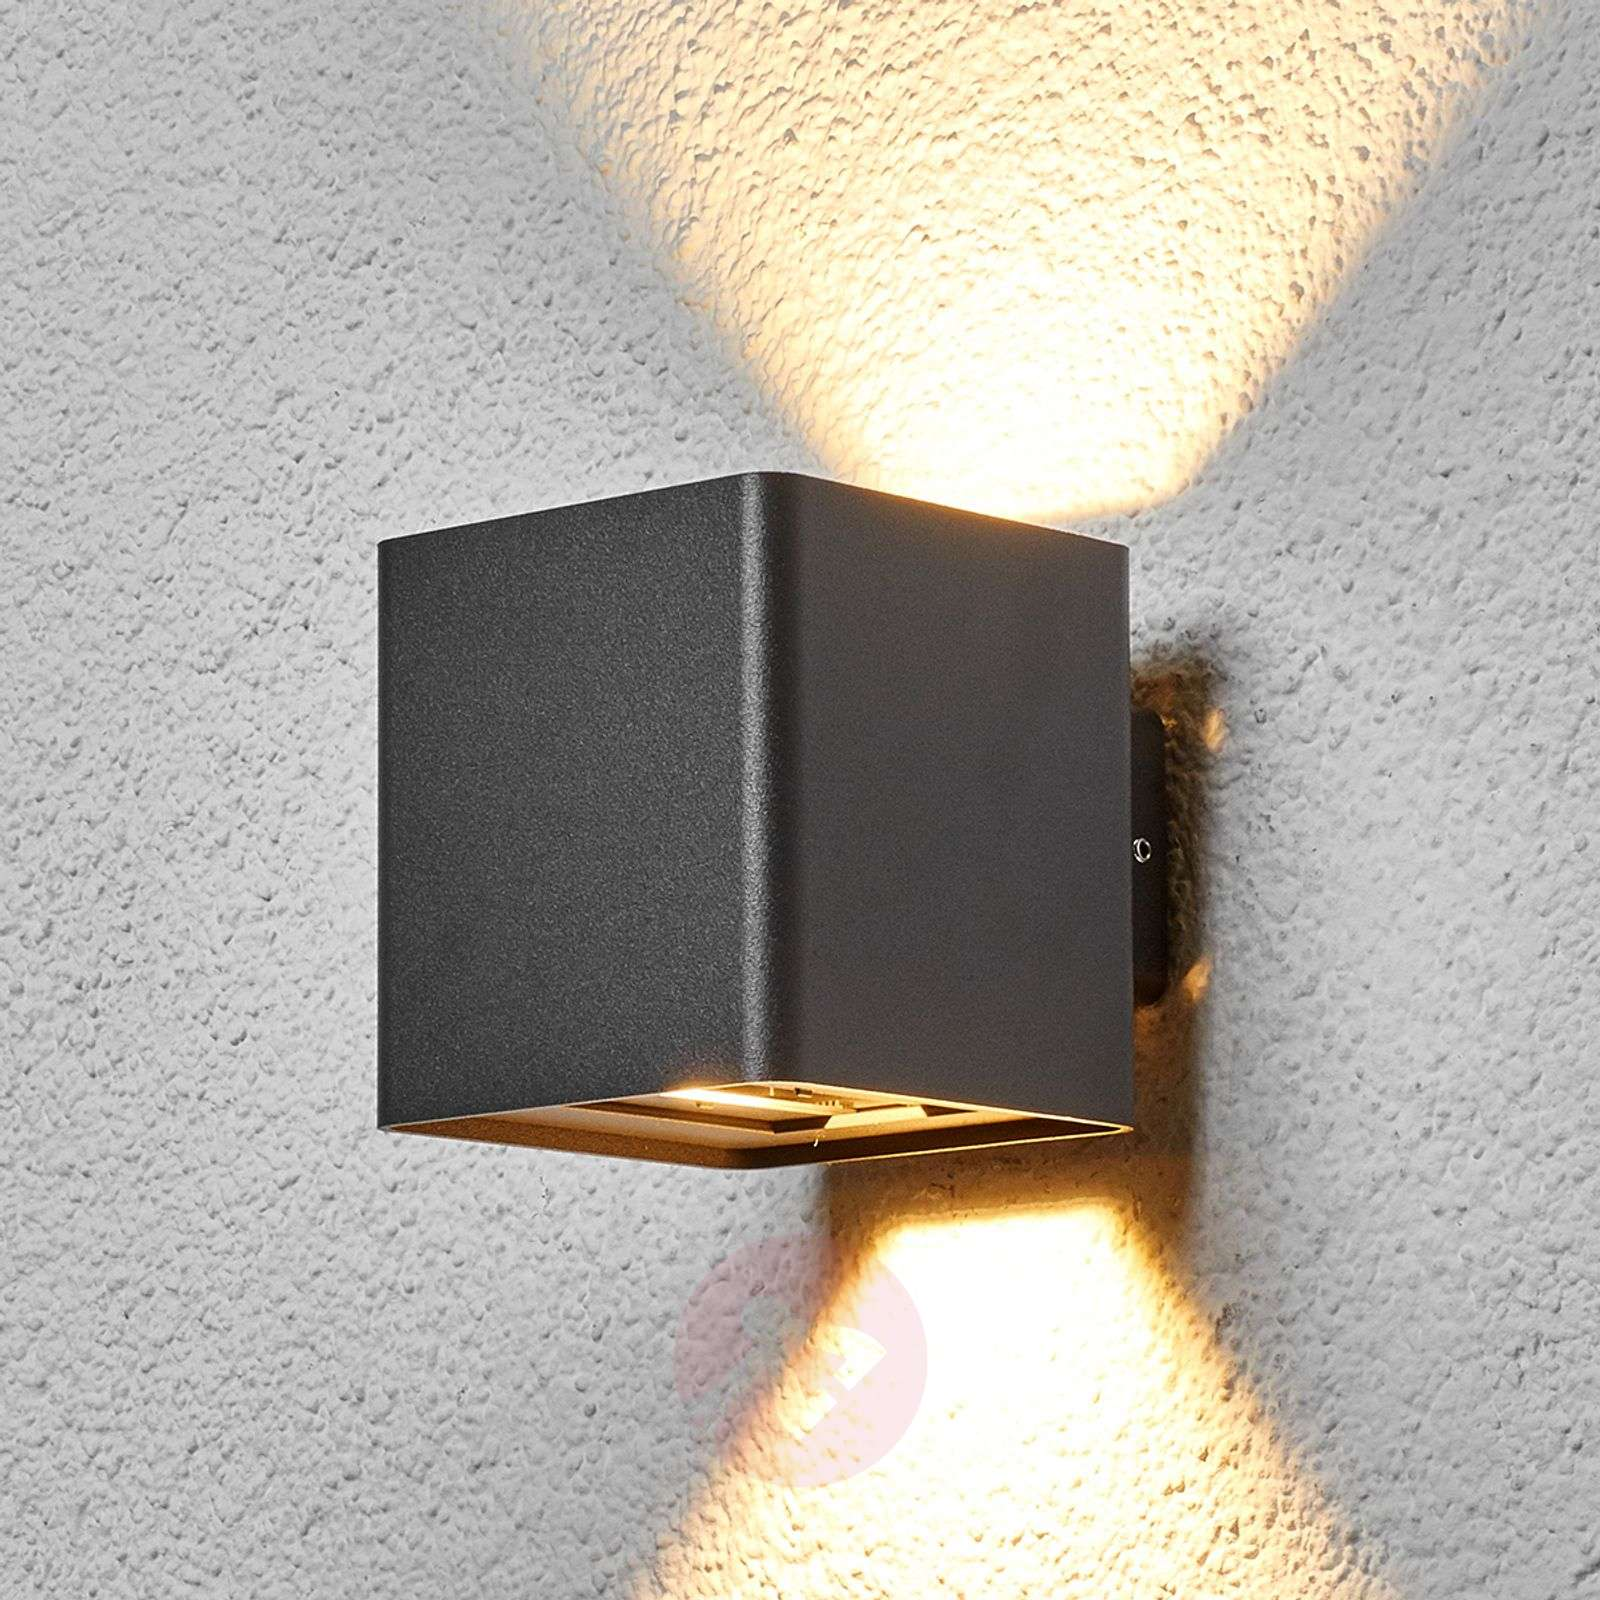 Graphite grey Aaron LED outdoor wall light-9616078-01